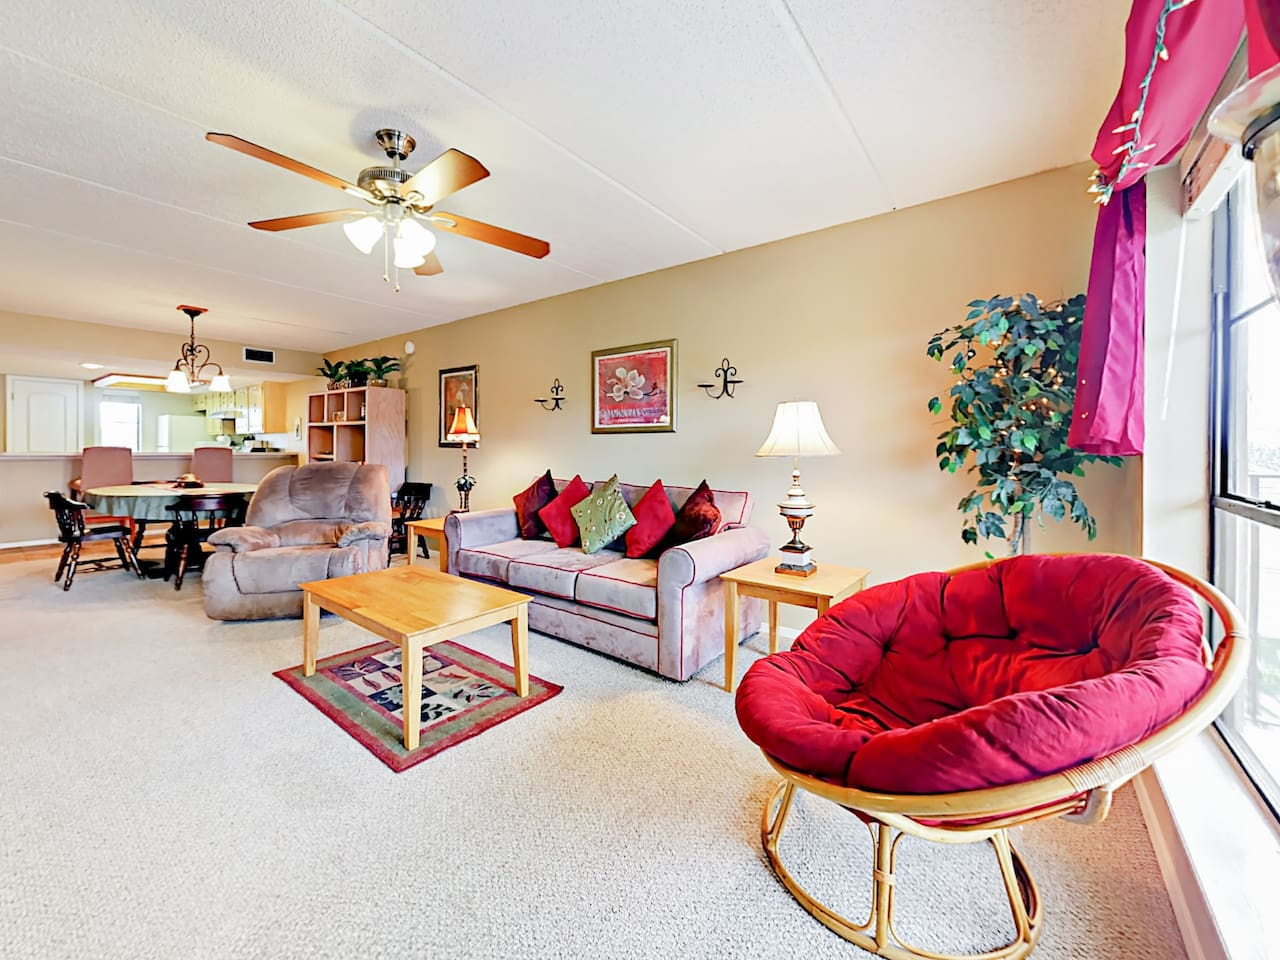 Spacious and sun-drenched living area. Professionally cleaned by TurnKey's dedicated housekeeping staff.